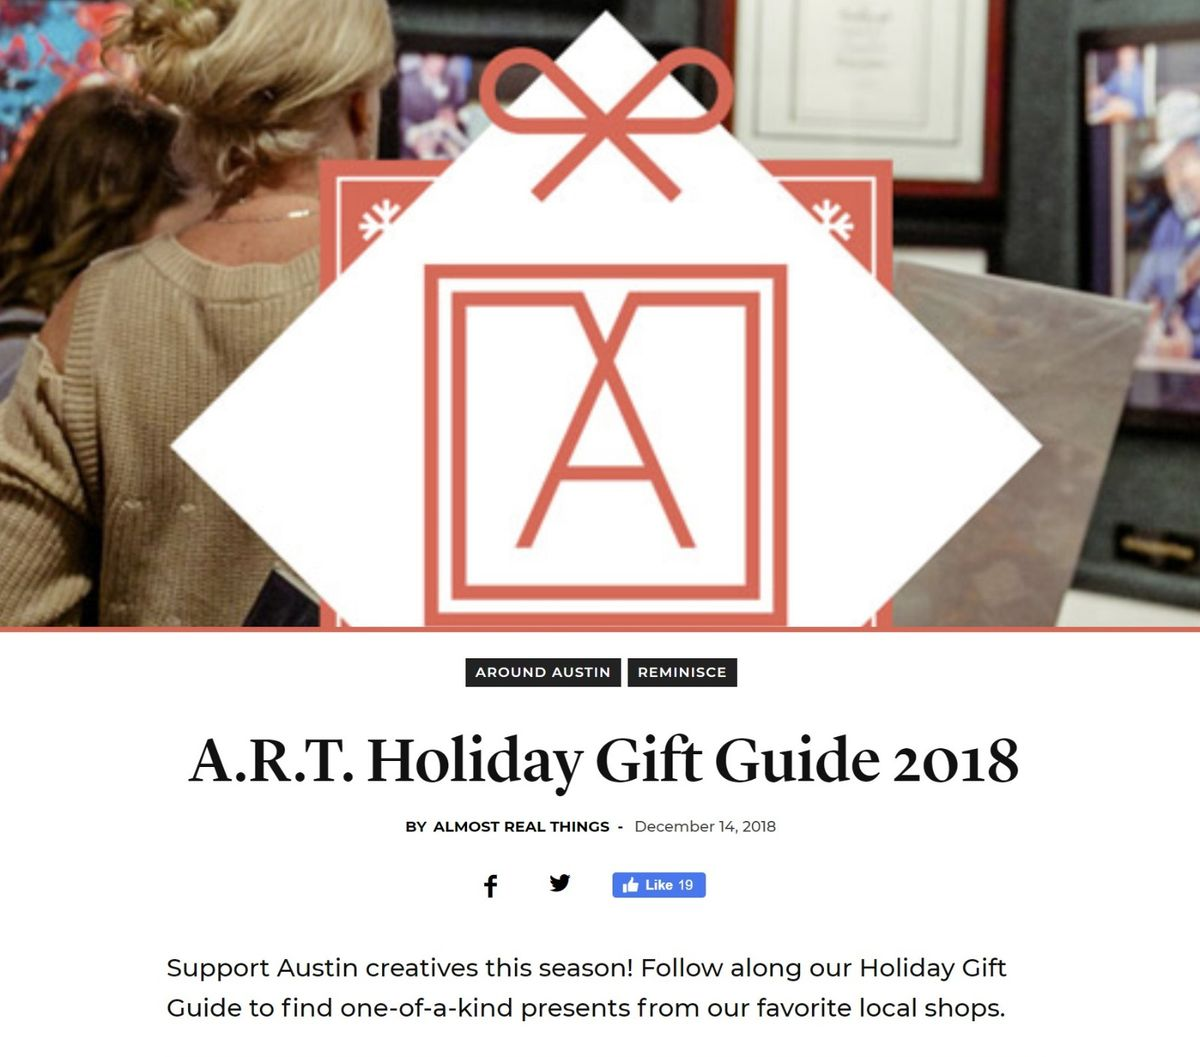 A.R.T. Holiday Gift Guide 2018.jpeg